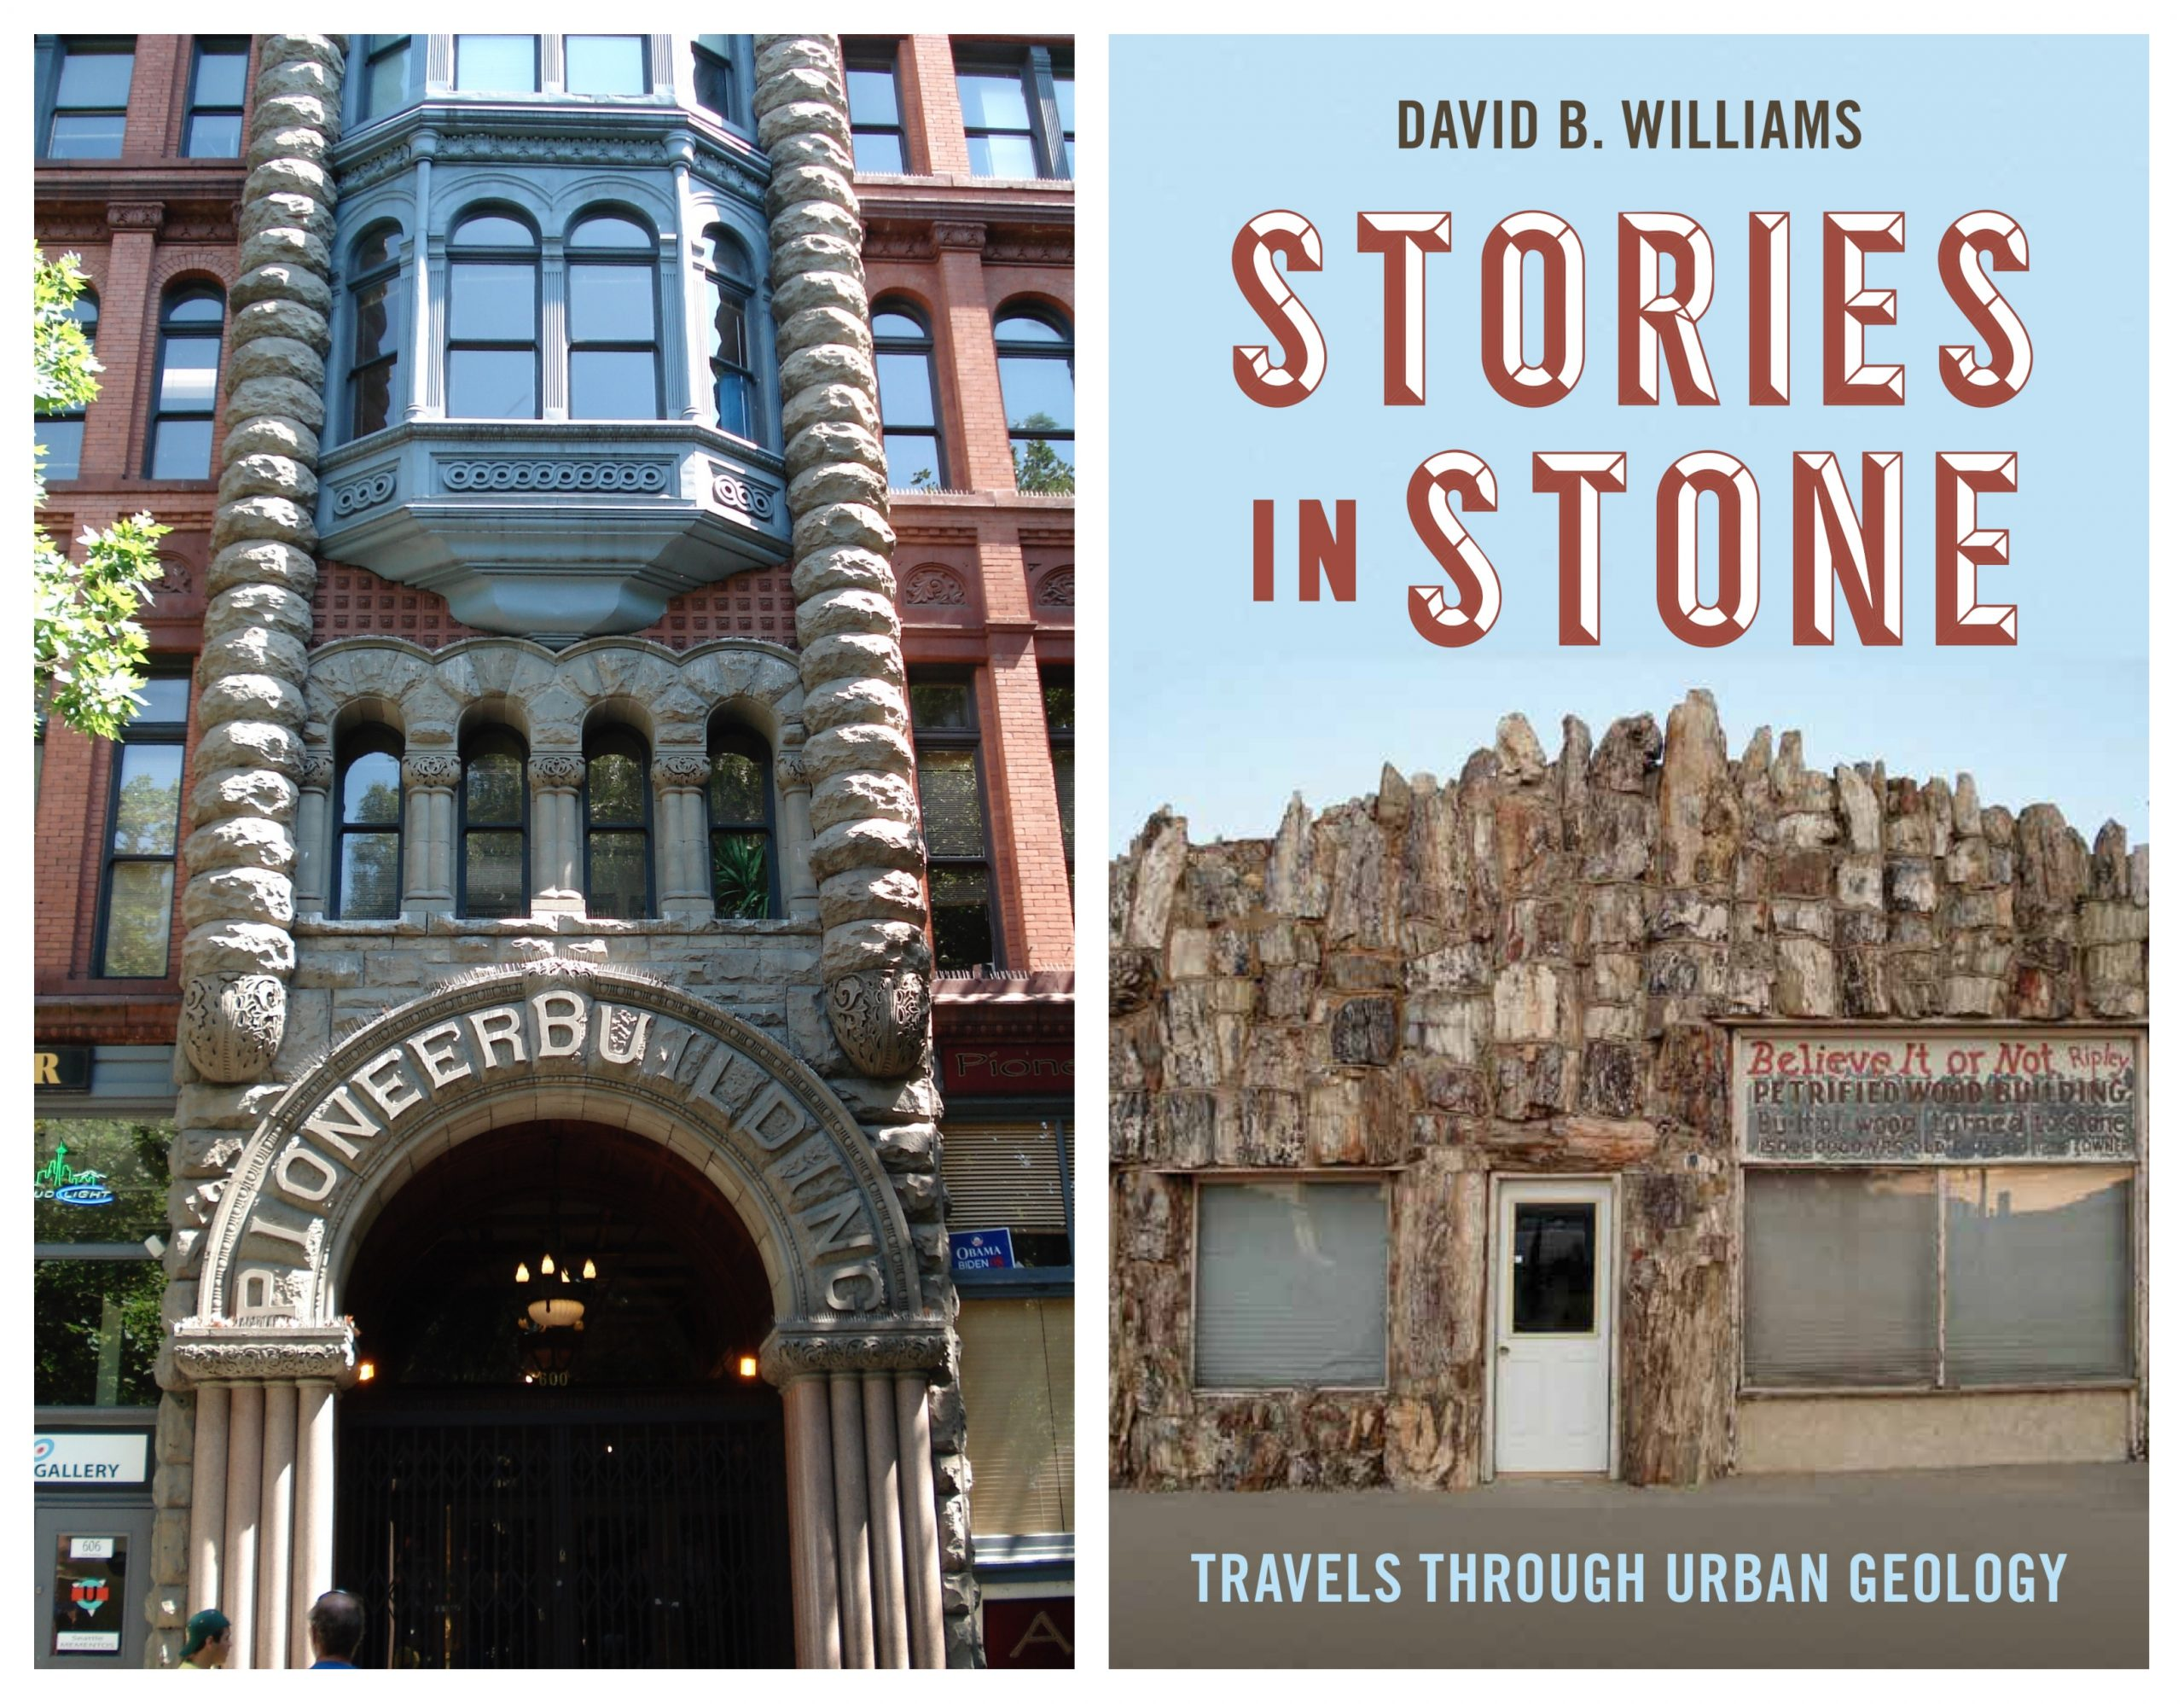 Pioneer Building in Seattle and book cover of 'Stories in Stone' by David B. Williams